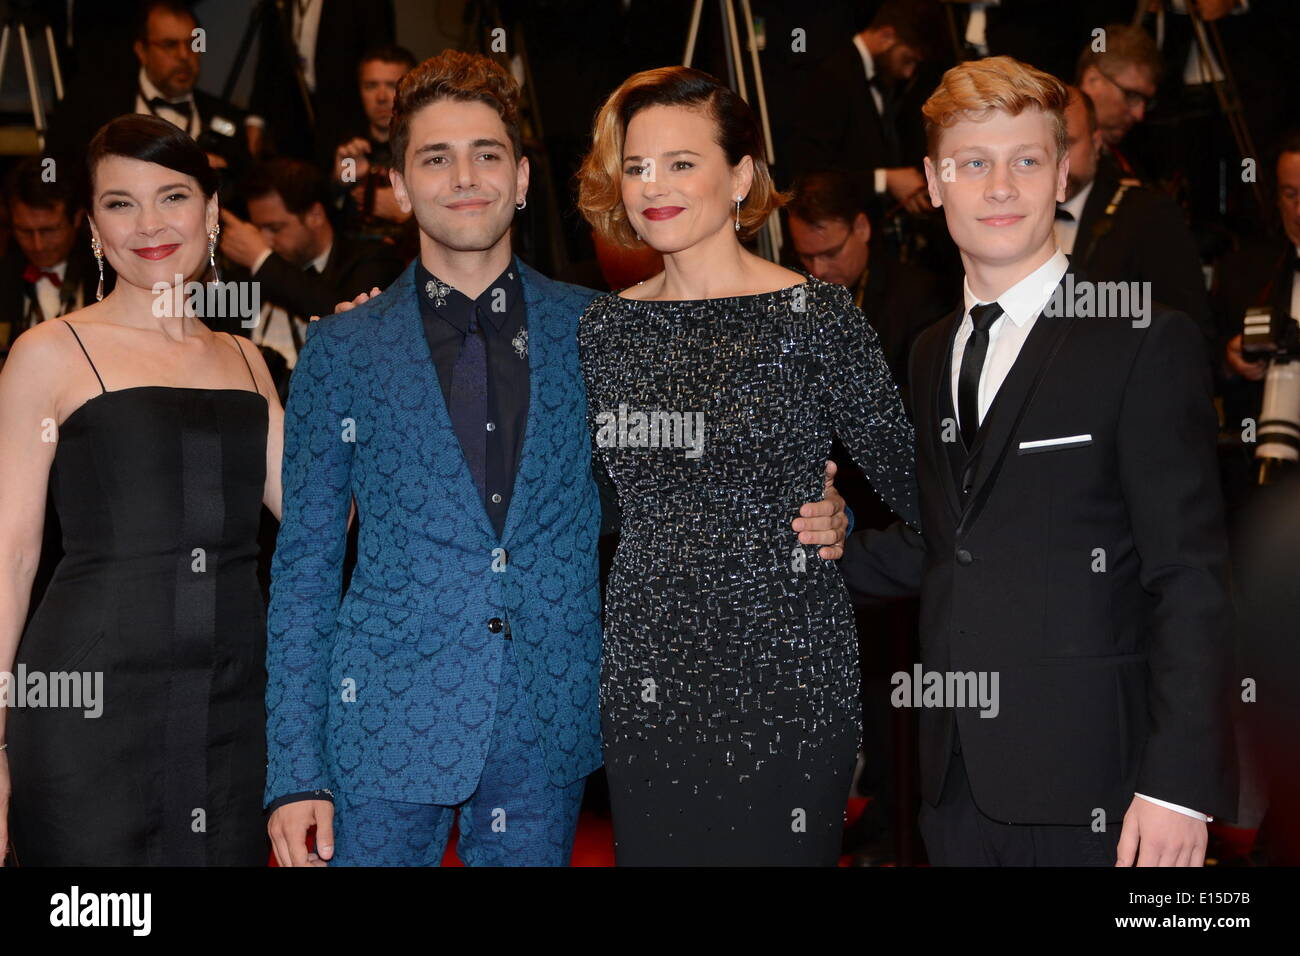 Cannes, France. 22nd May, 2014. CANNES, FRANCE - MAY 22: Nancy Grant, Suzanne Clement, Anne Dorval, director Xavier Dolan and Olivier Pilon attend the 'Mommy' premiere during the 67th Annual Cannes Film Festival on May 22, 2014 in Cannes, France Credit:  Frederick Injimbert/ZUMAPRESS.com/Alamy Live News - Stock Image